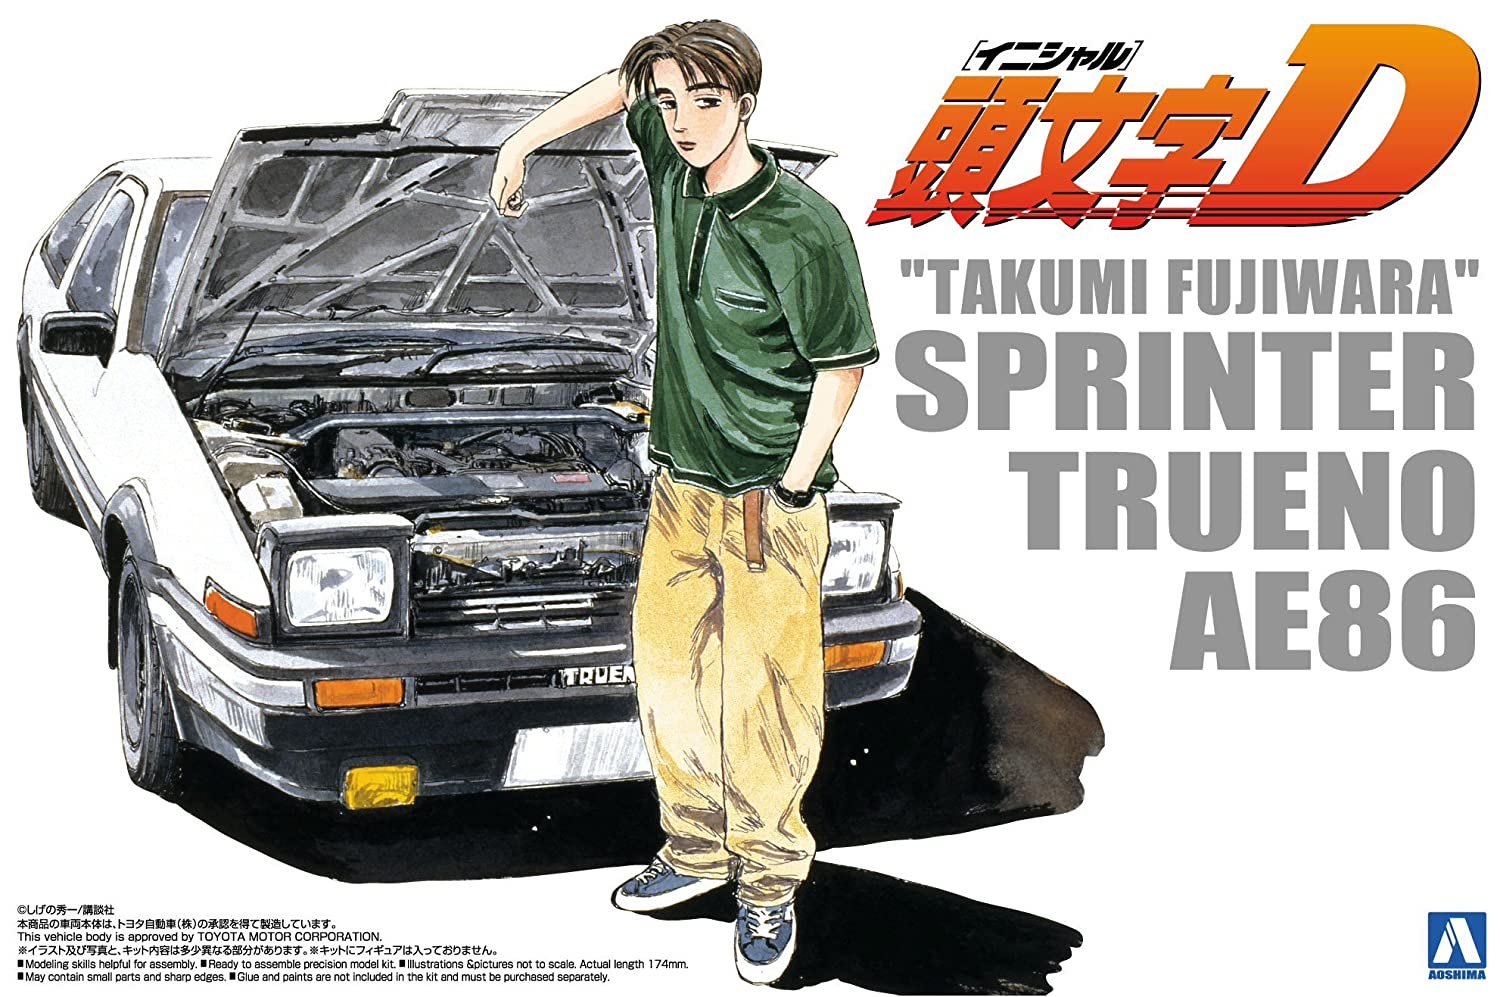 Initial D No.05 Takumi Fujiwara 86 TRUENO vol. 1 ver. (Plastic Model) (japan import): Amazon.es: Juguetes y juegos